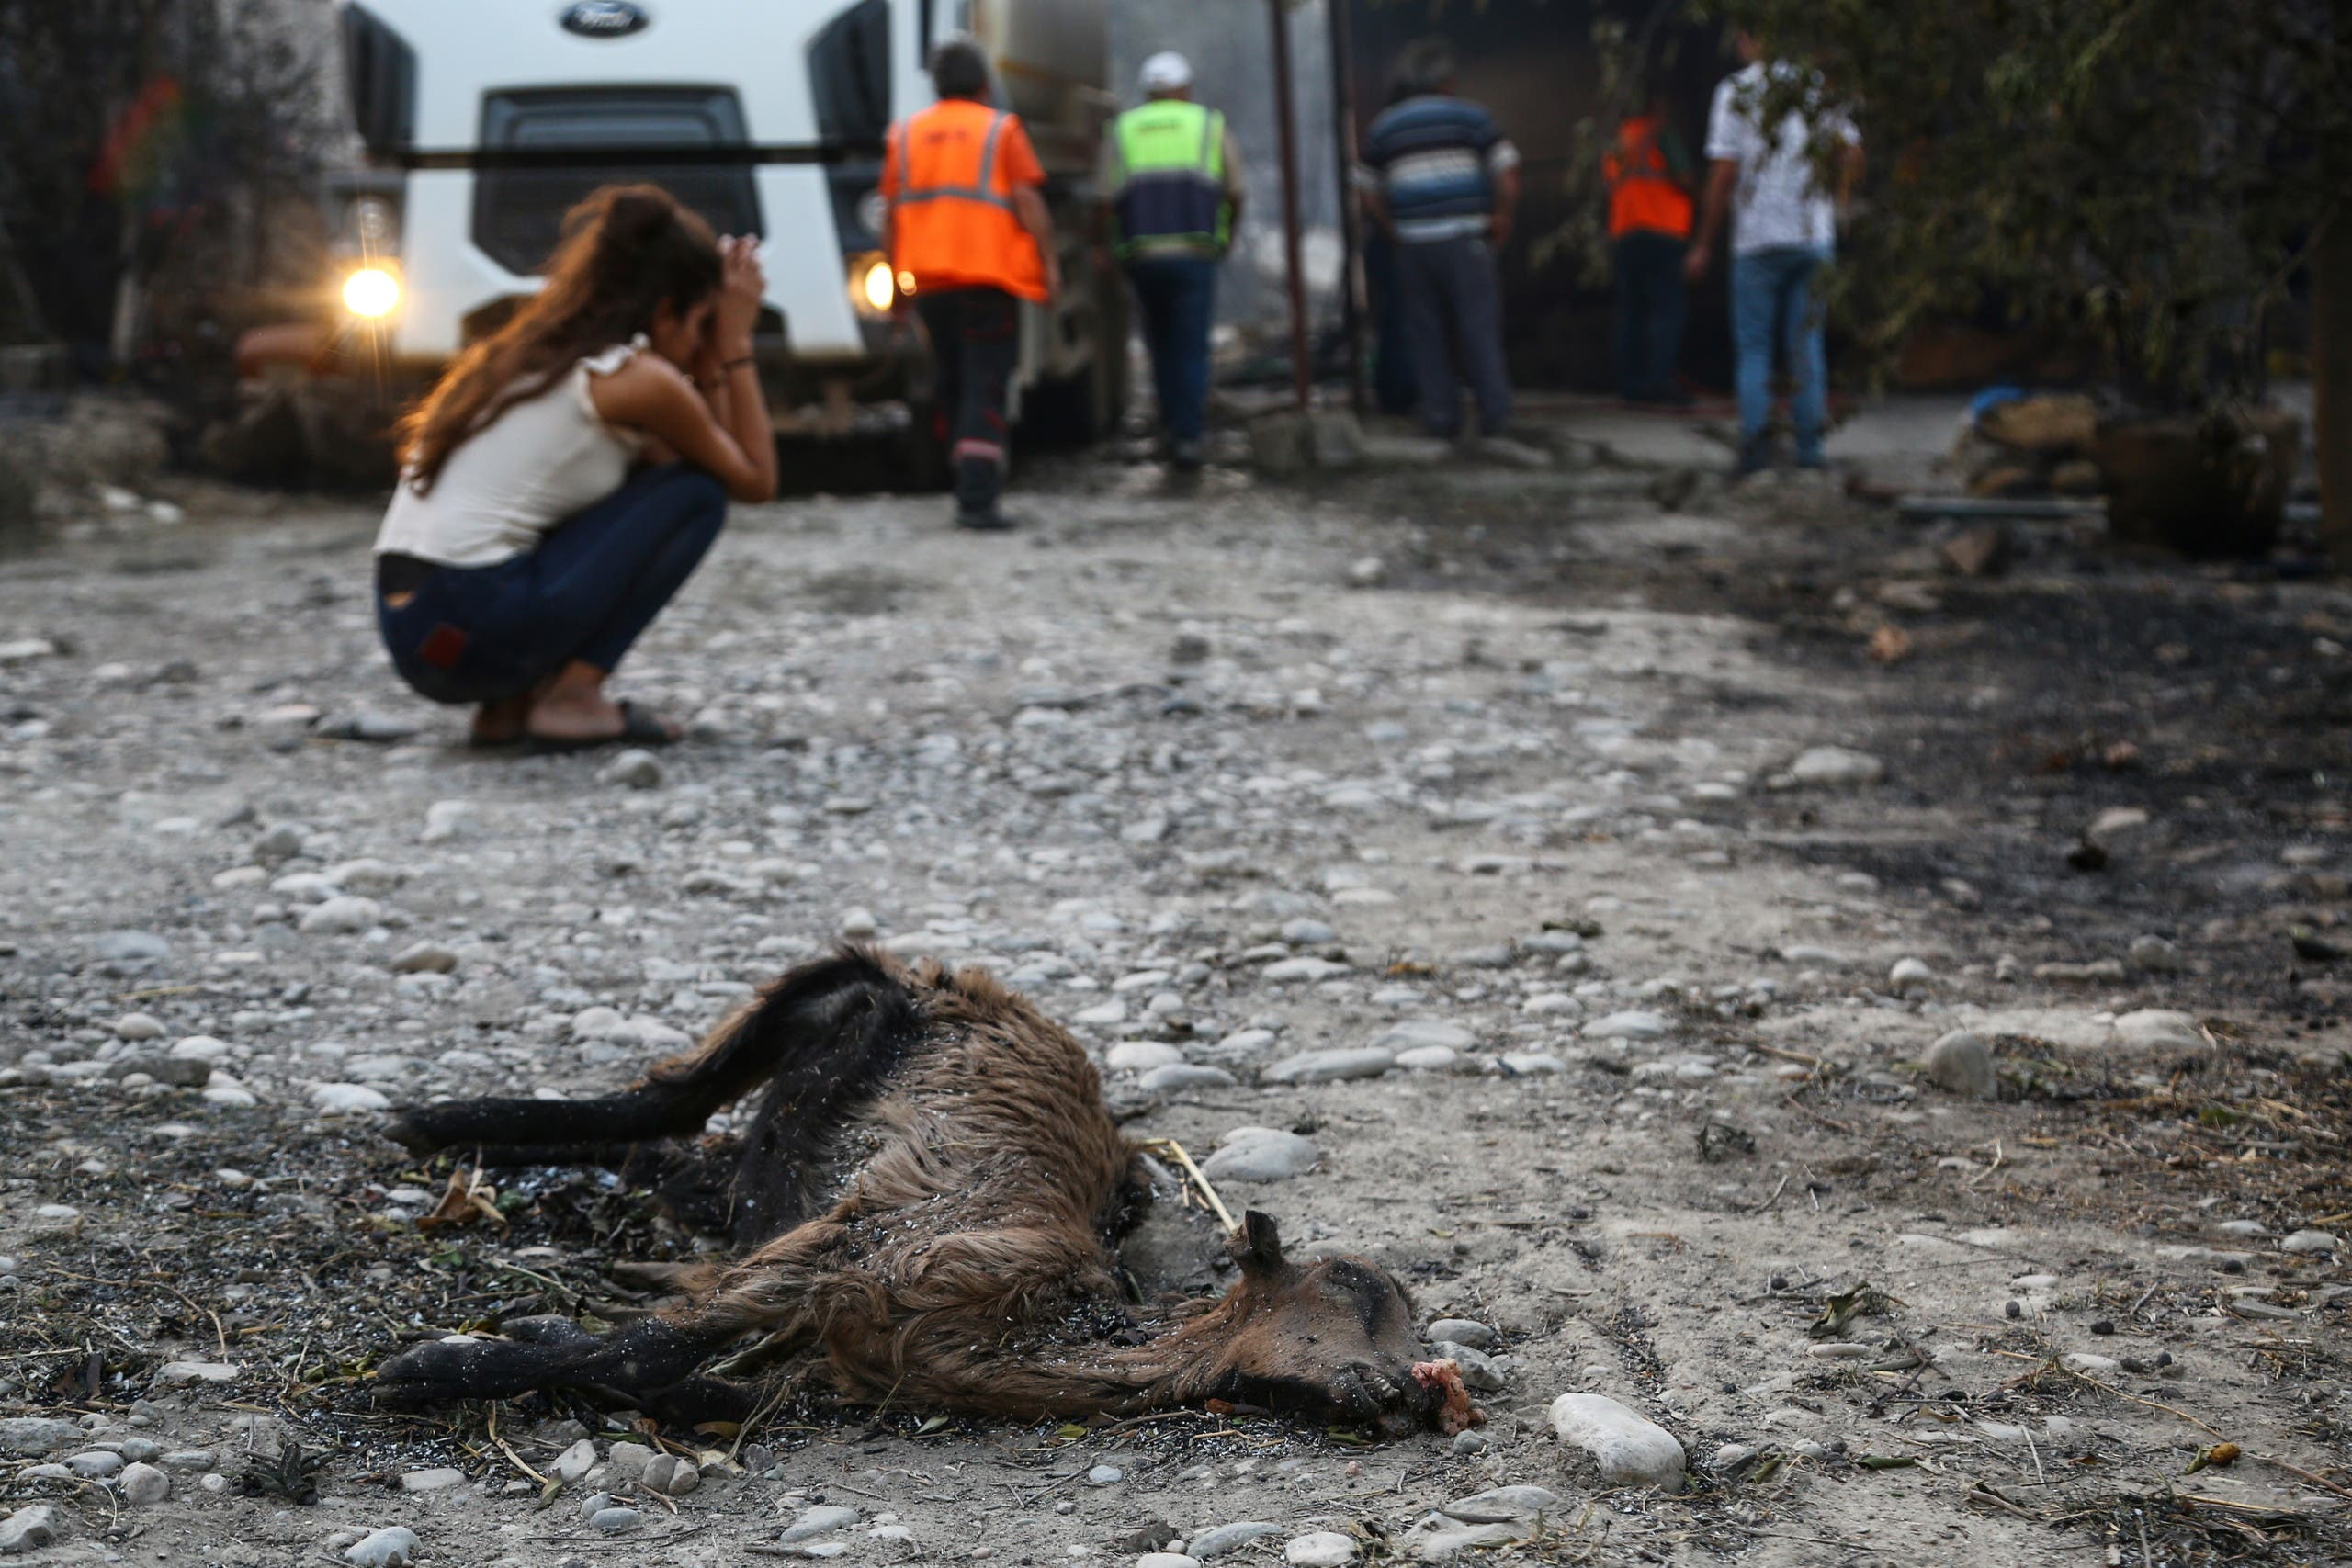 A resident reacts next to the remains of a dead animal laying in an area scorched by a forest fire that spread to the town of Manavgat, 75 km (45 miles) east of the resort city of Antalya, Turkey, July 28, 2021. (Reuters)